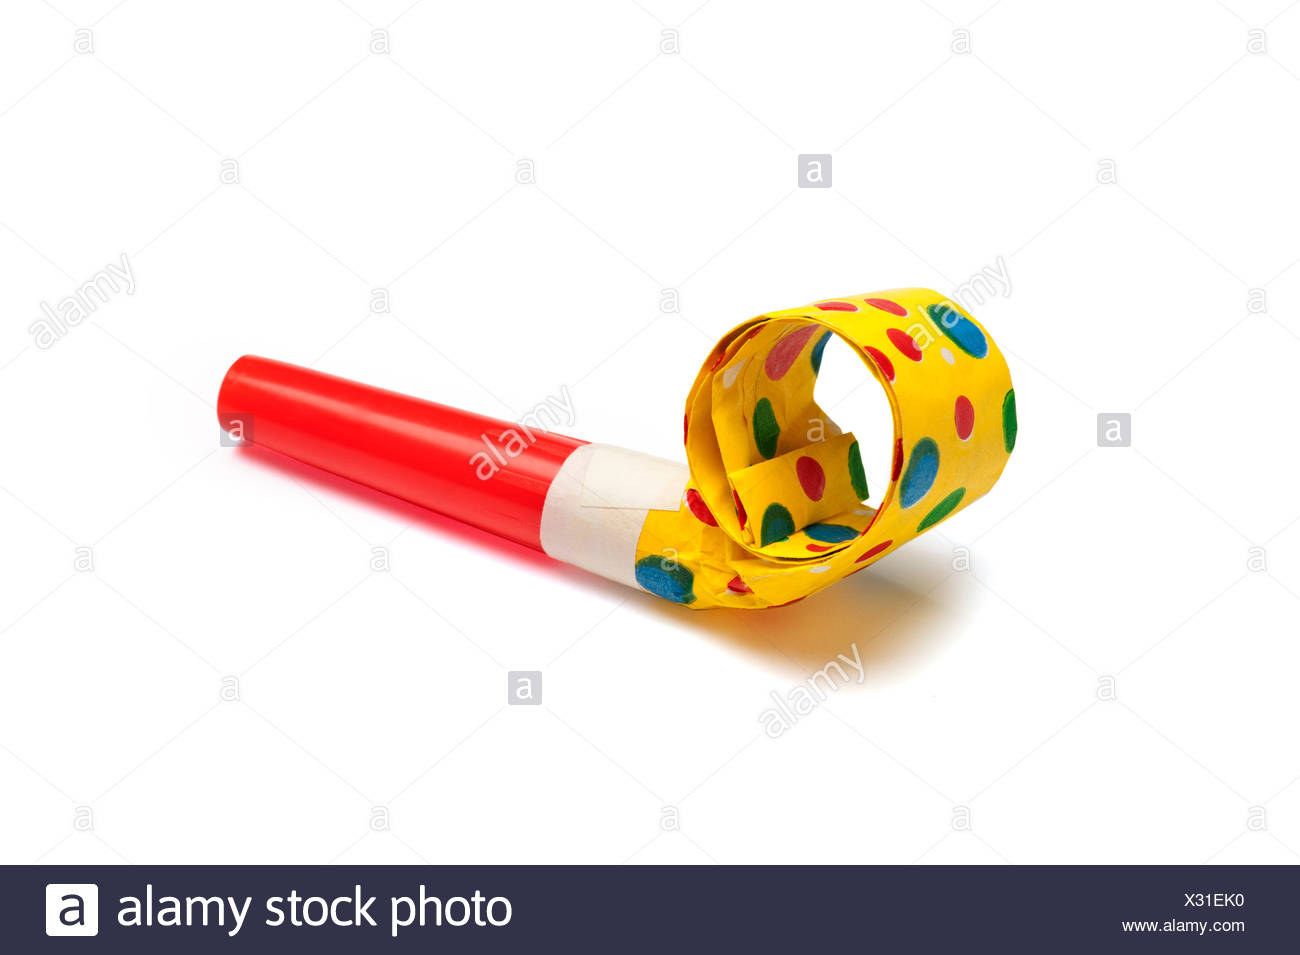 Party Blower: A Party Blower Stock Photo: 277243316